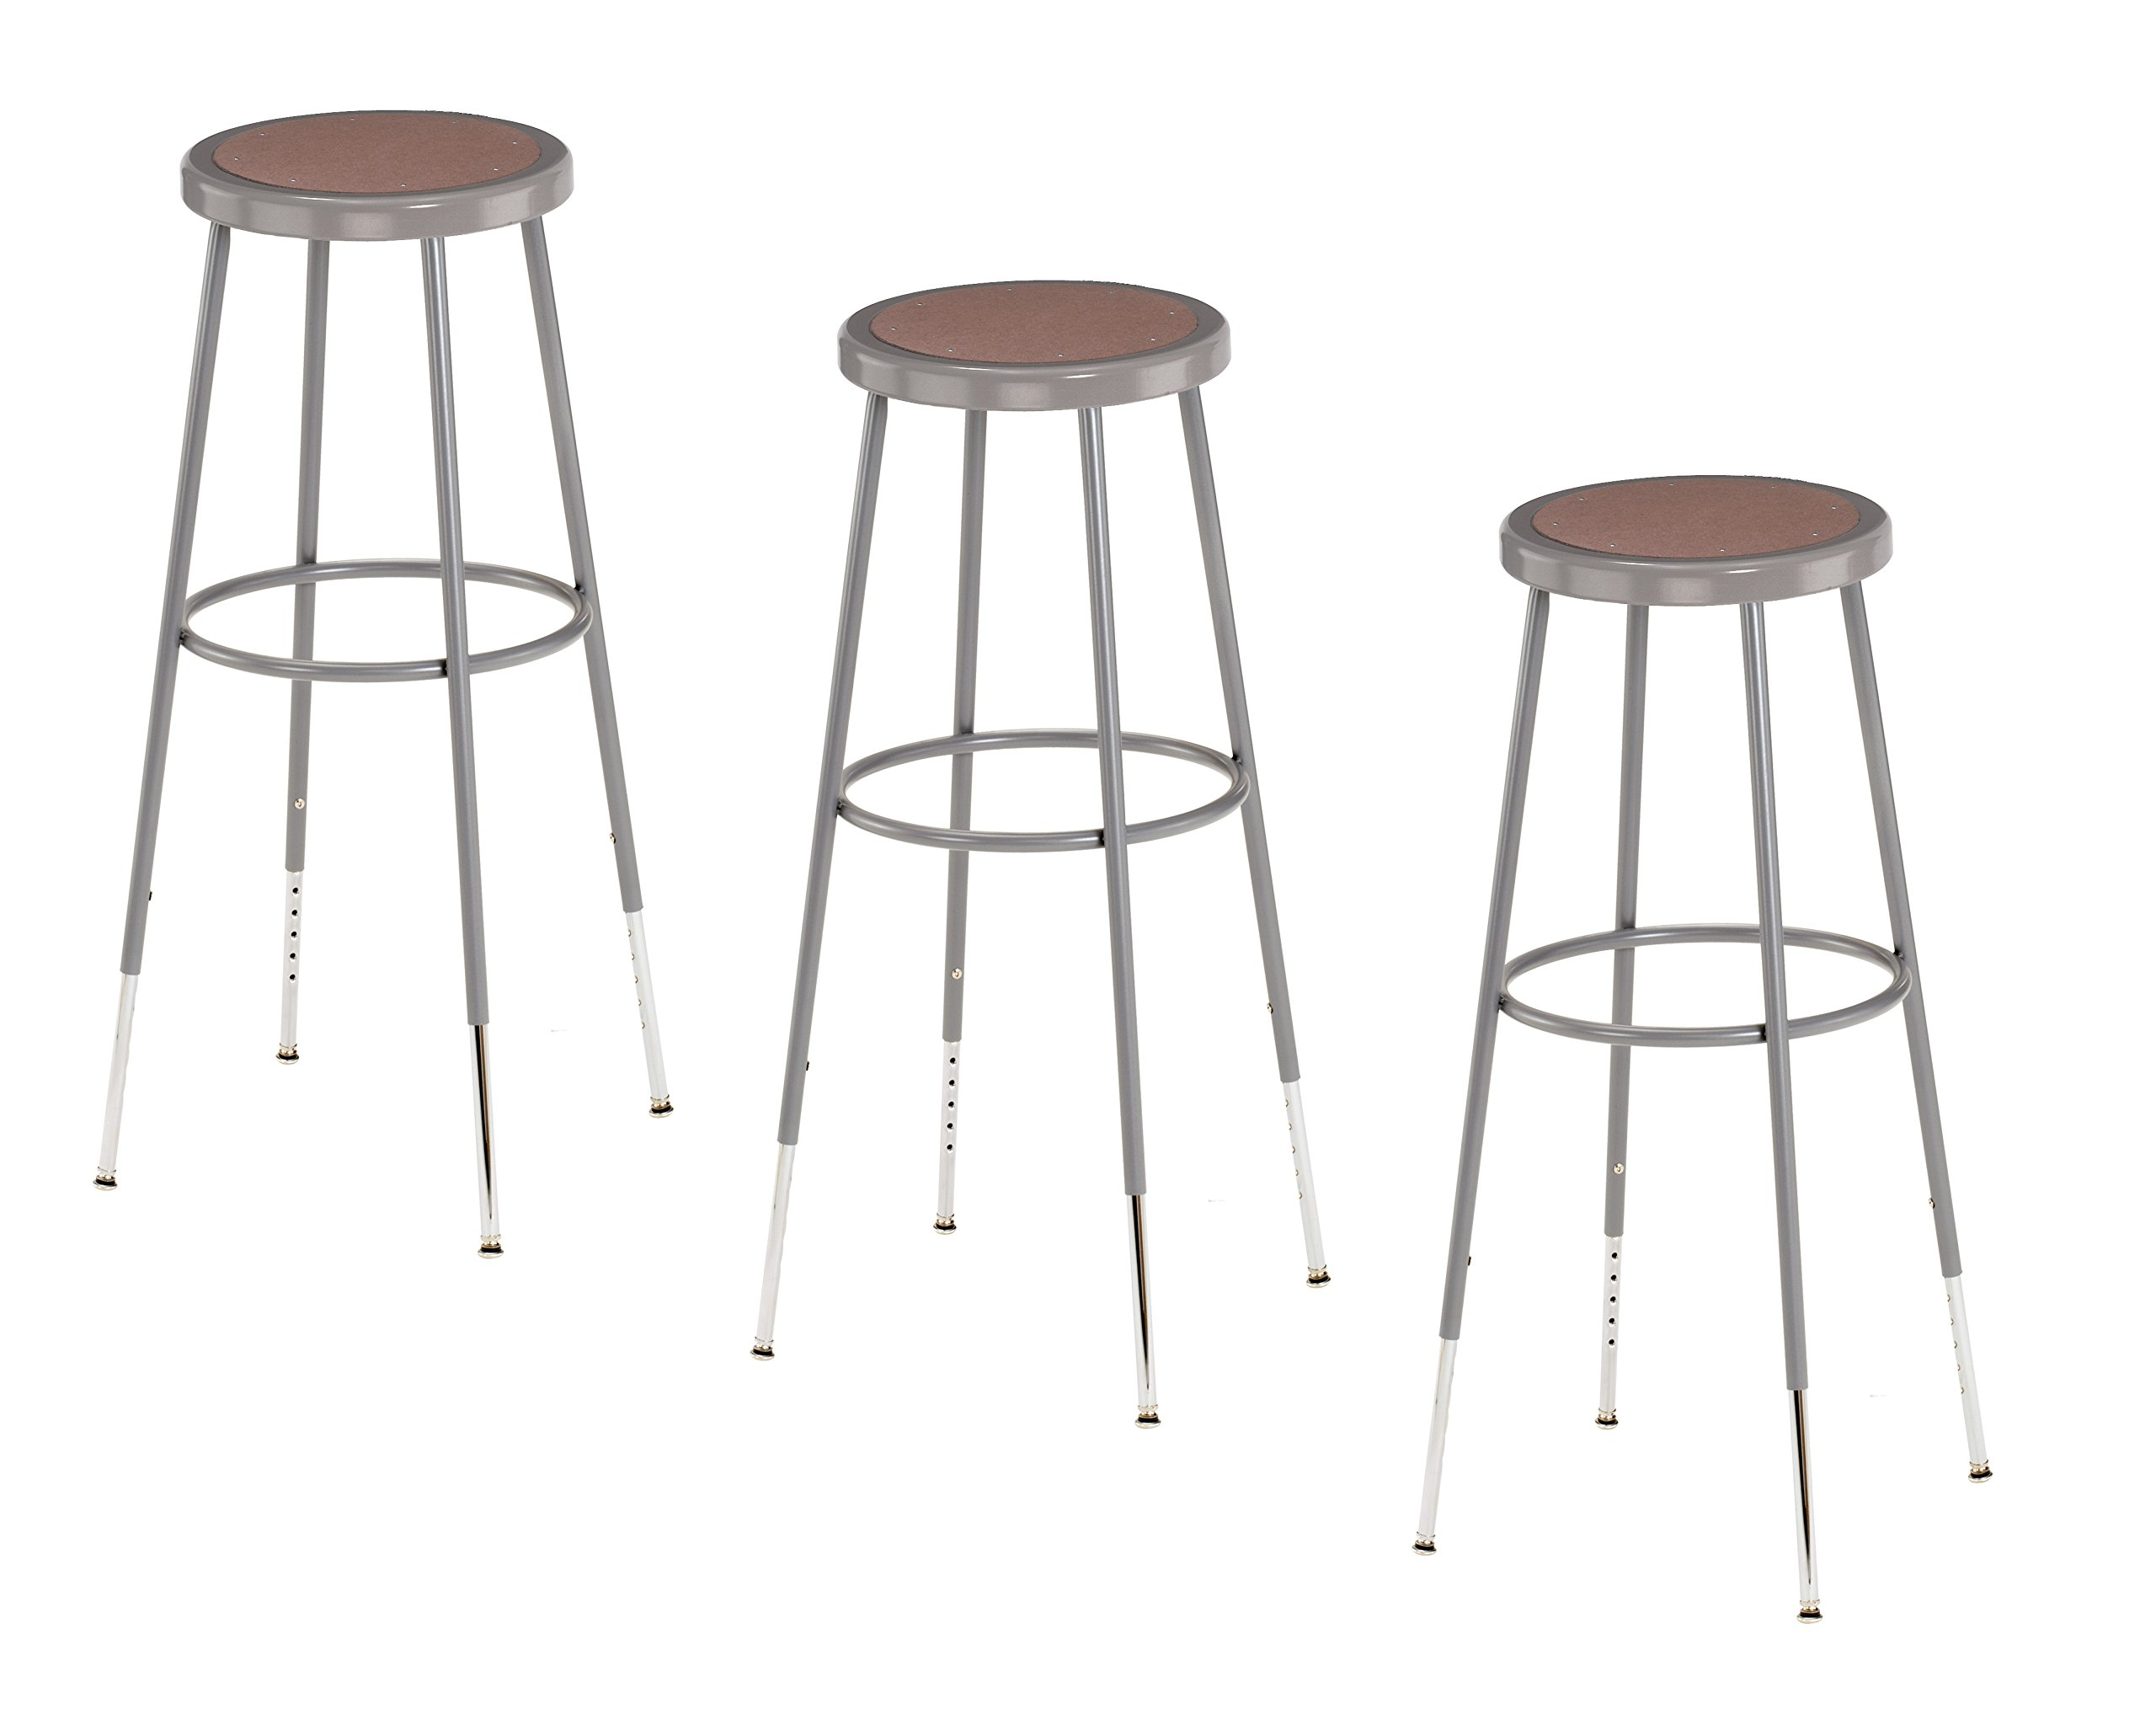 National Public Seating 6230H-CN Steel Stool with Hardboard Seat Adjustable, 31''-39'', Grey (Pack of 3) by National Public Seating